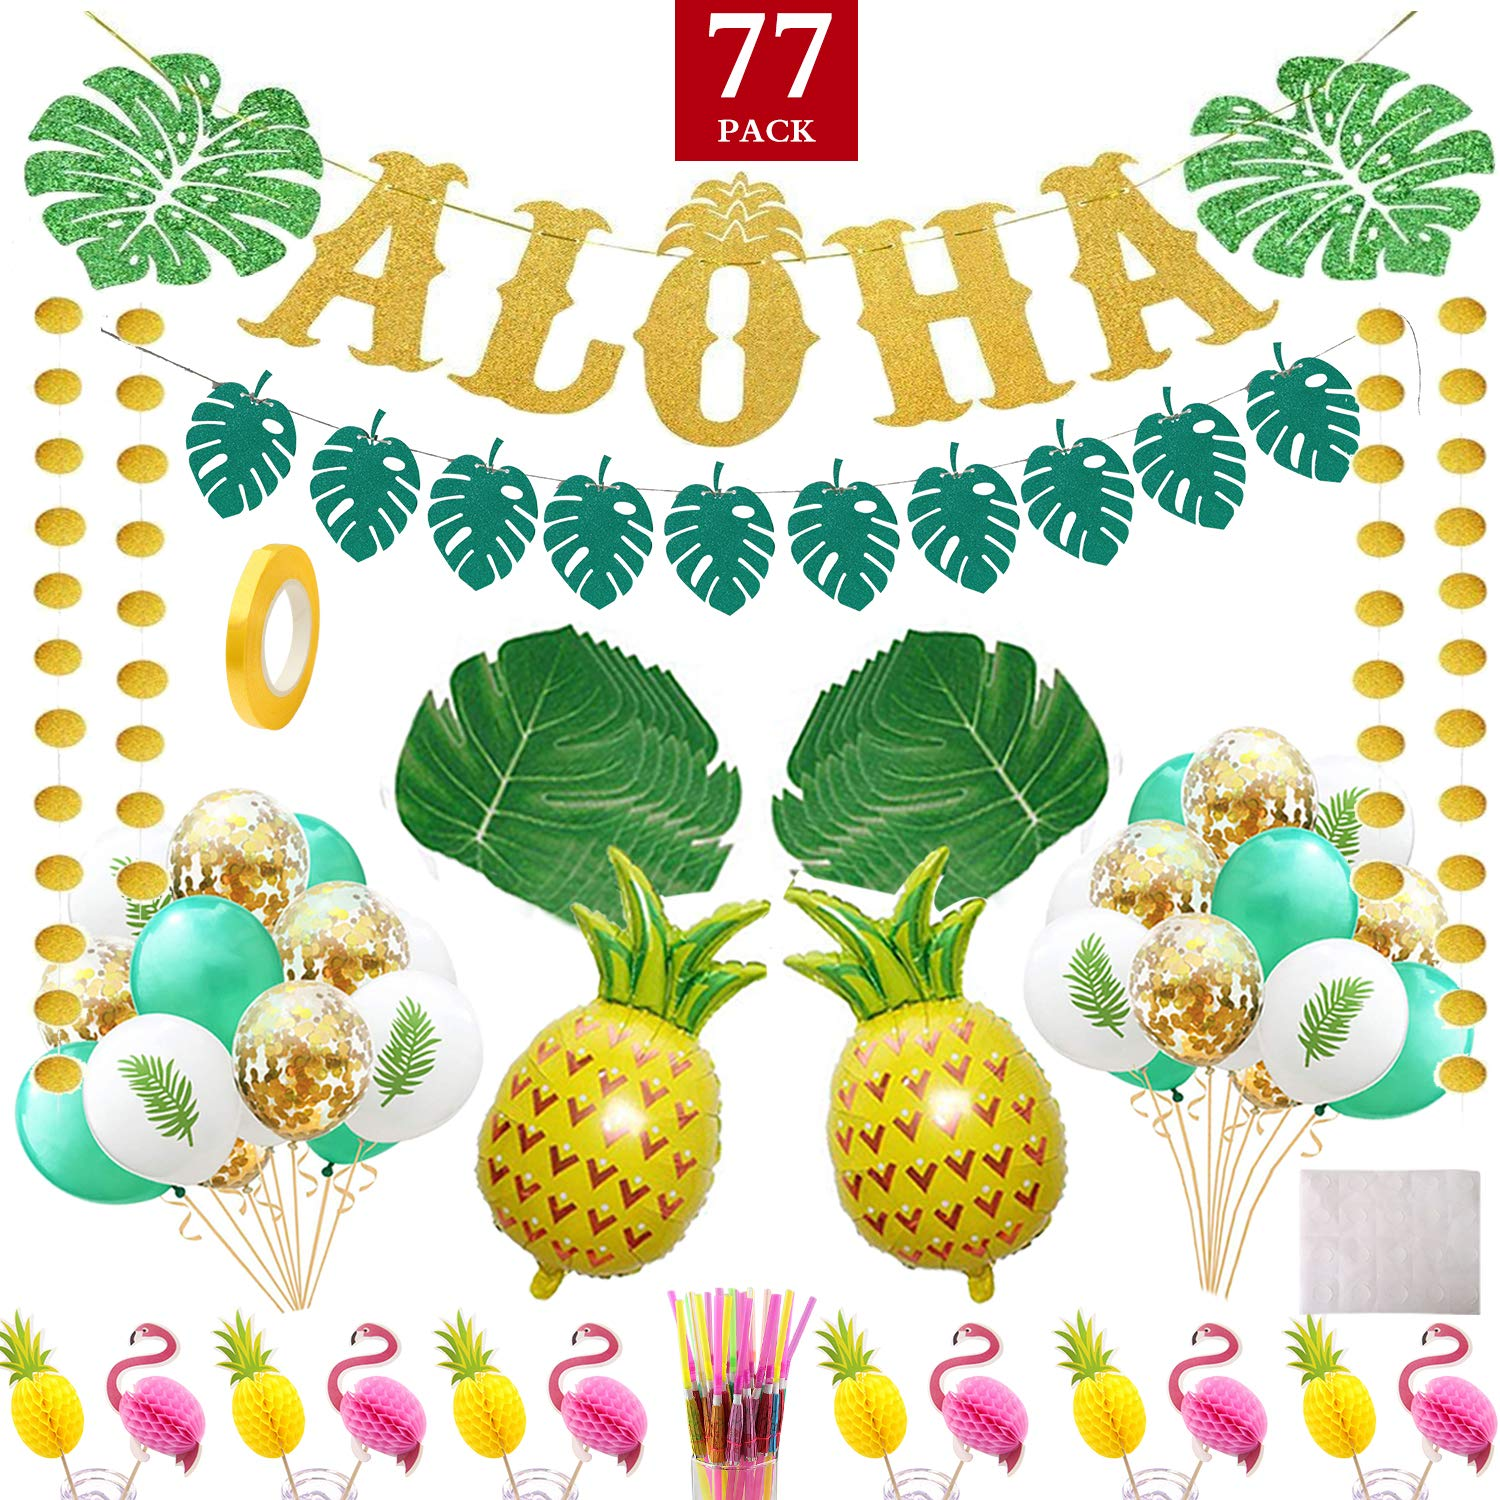 Luau Party Supplies-Hawaiian Aloha Theme Party Decorations Include Gold Glittery Aloha and Shiny Green Leaves Banner,Palm leaves Cake Topper Balloons Straw for Summer Luau Birthday Party 77 packs